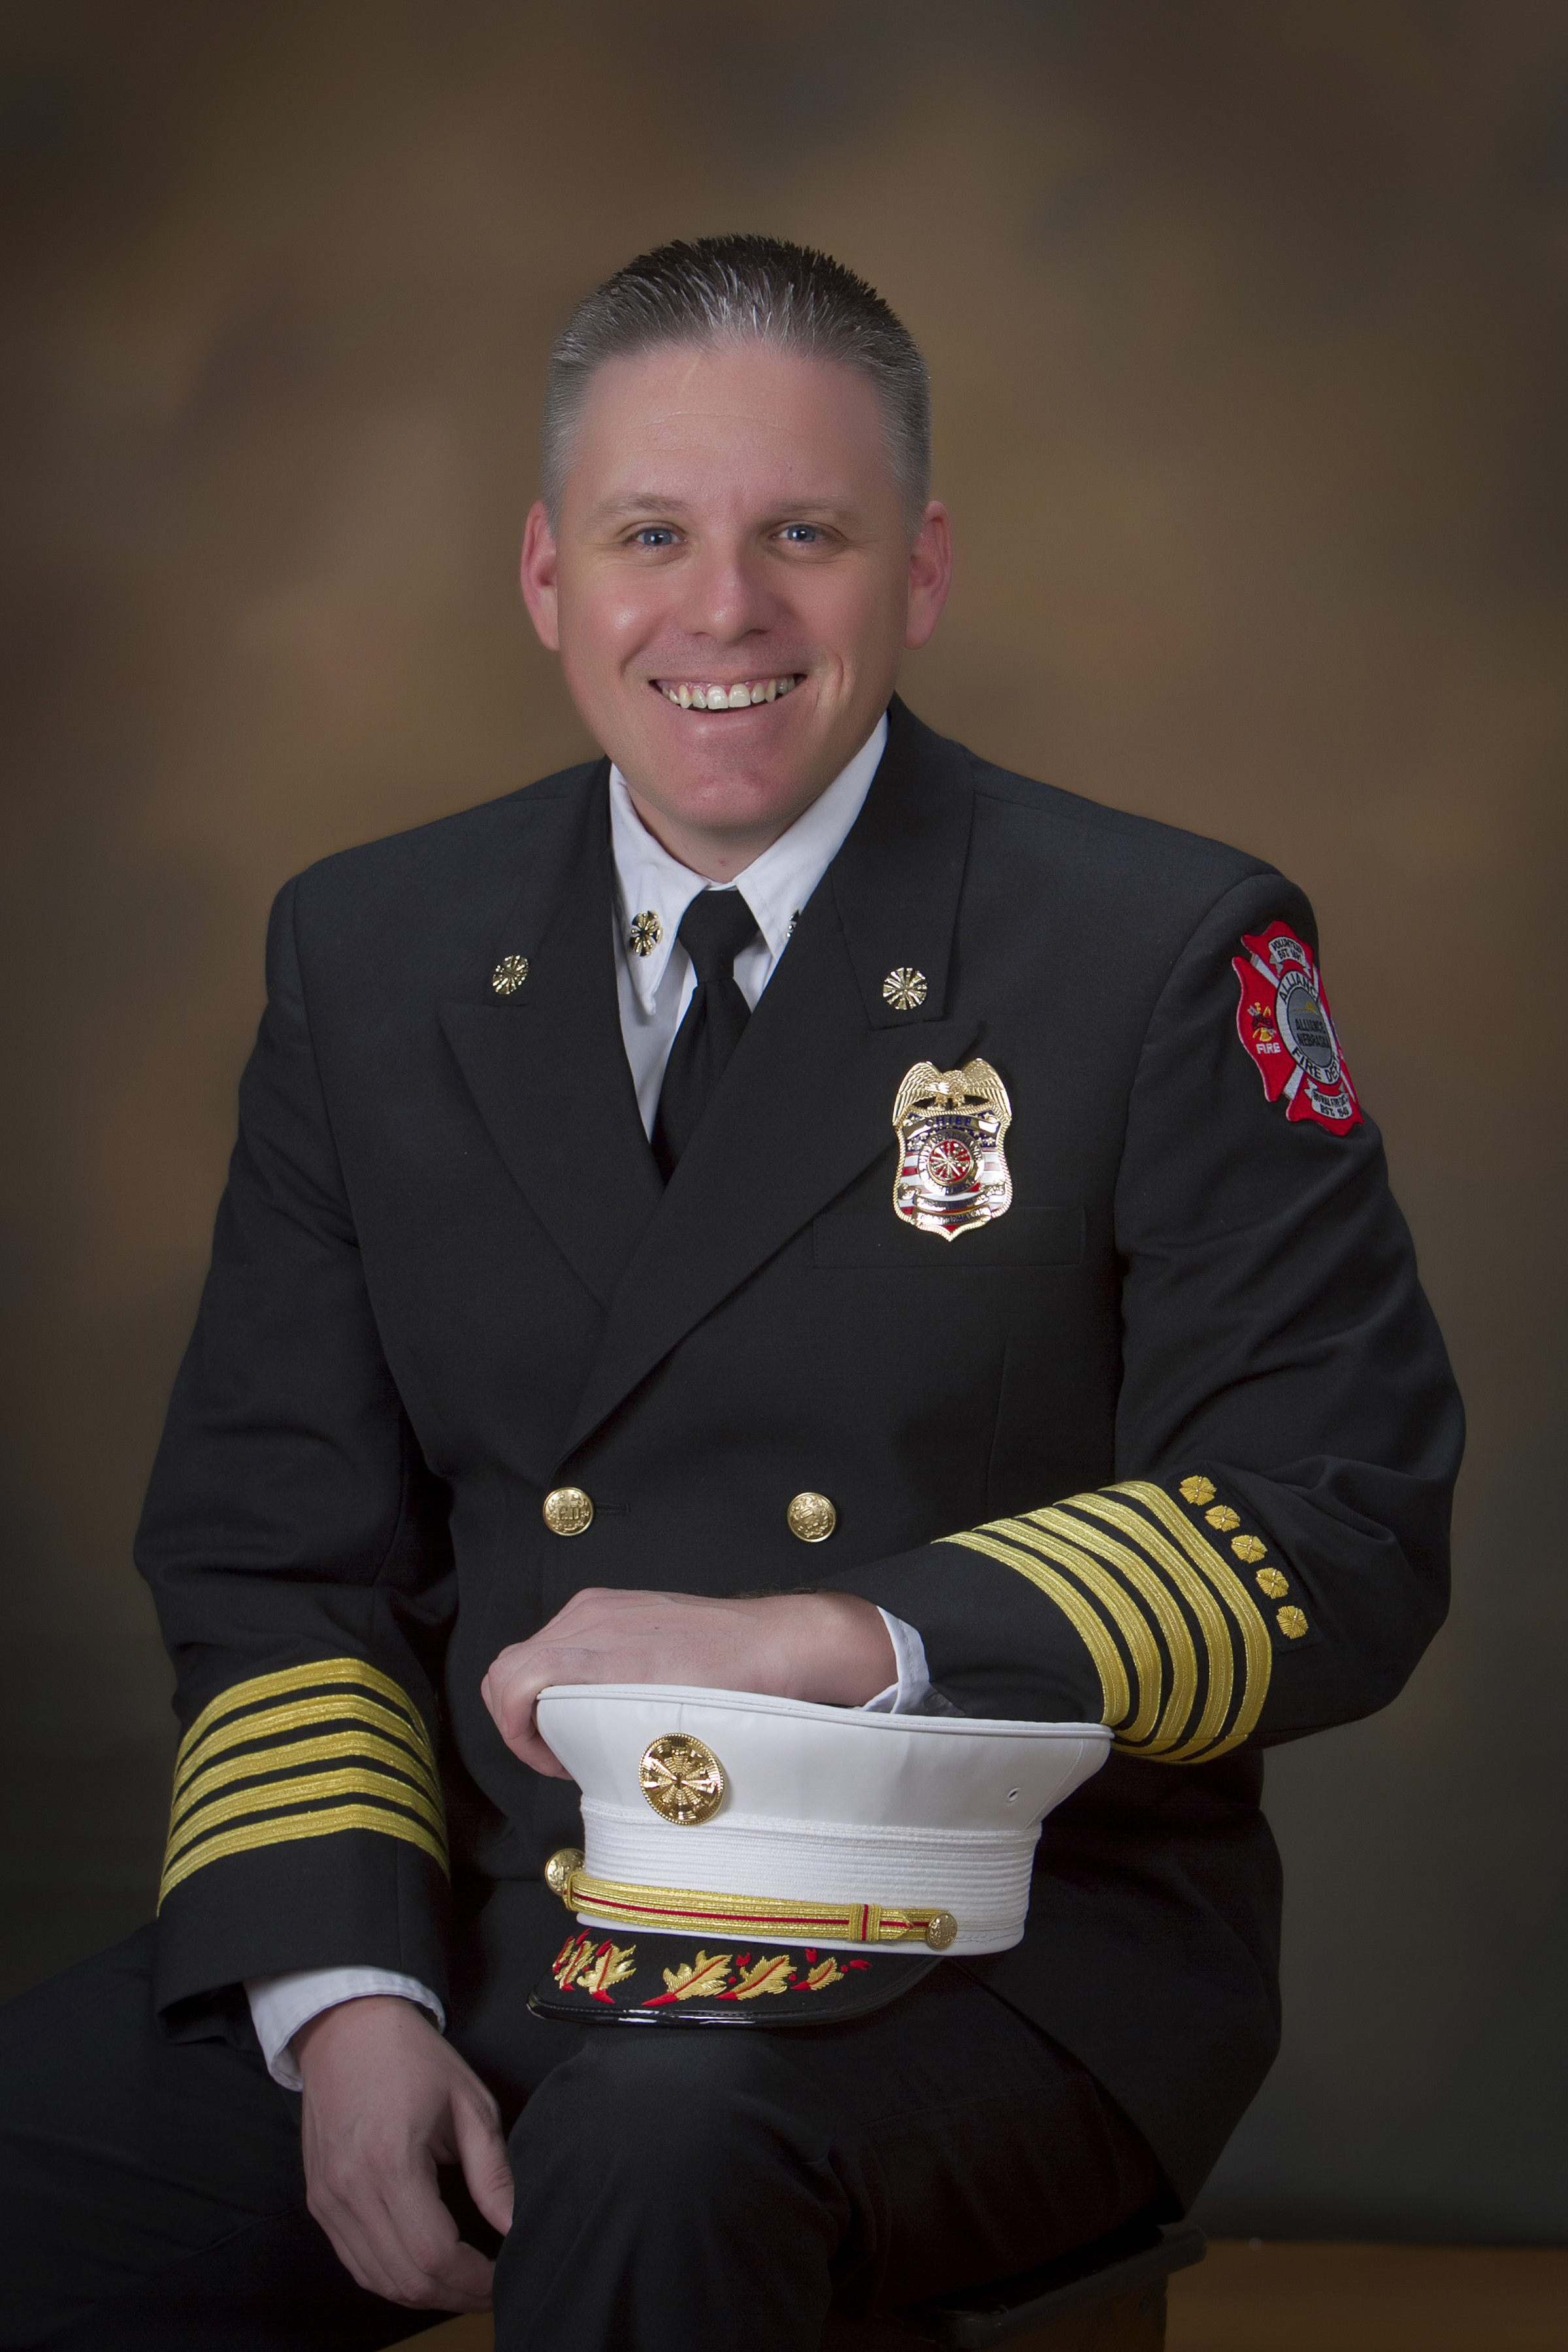 firefight0003-Chief T Shoemaker 2013.jpg